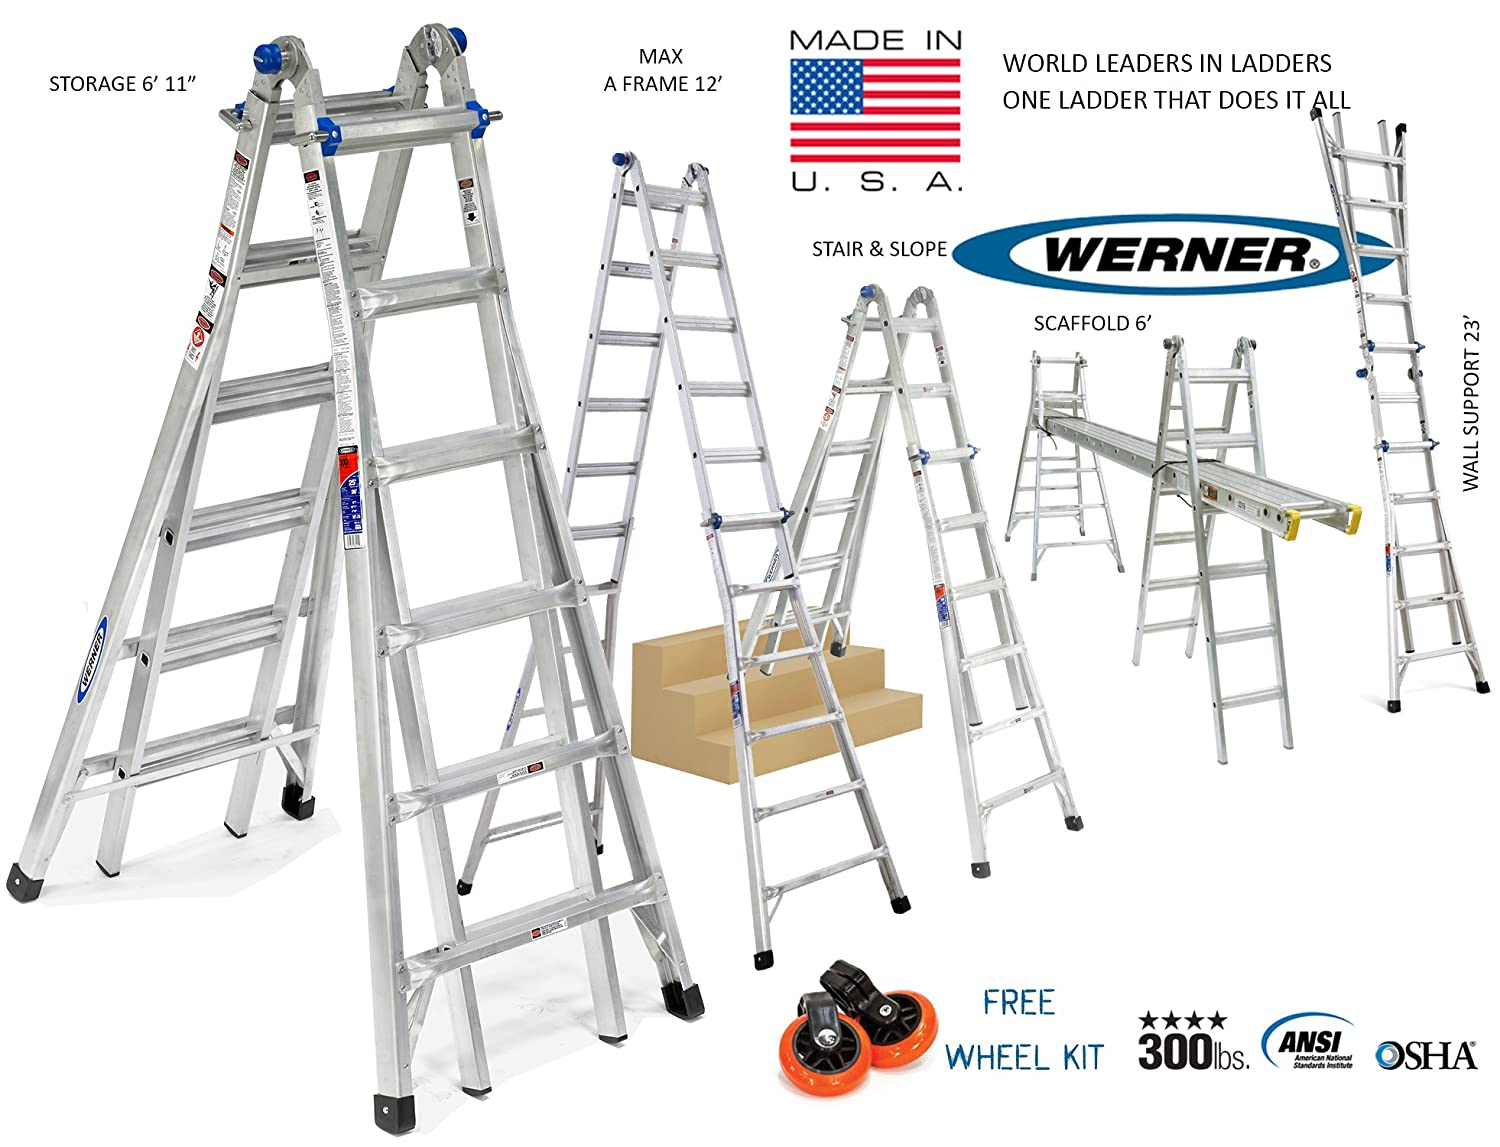 Werner USA MT Series Model 26 - 6ft to 23ft Aluminium Step ladder Multi folding - Multi use 24 in 1 - A-frame - wall support & staircase ladder - Heavy duty - Ideal for double height - Wheel kit & Wide flared base - Worlds best Telescopic ladder - Top seller on Amazon USA